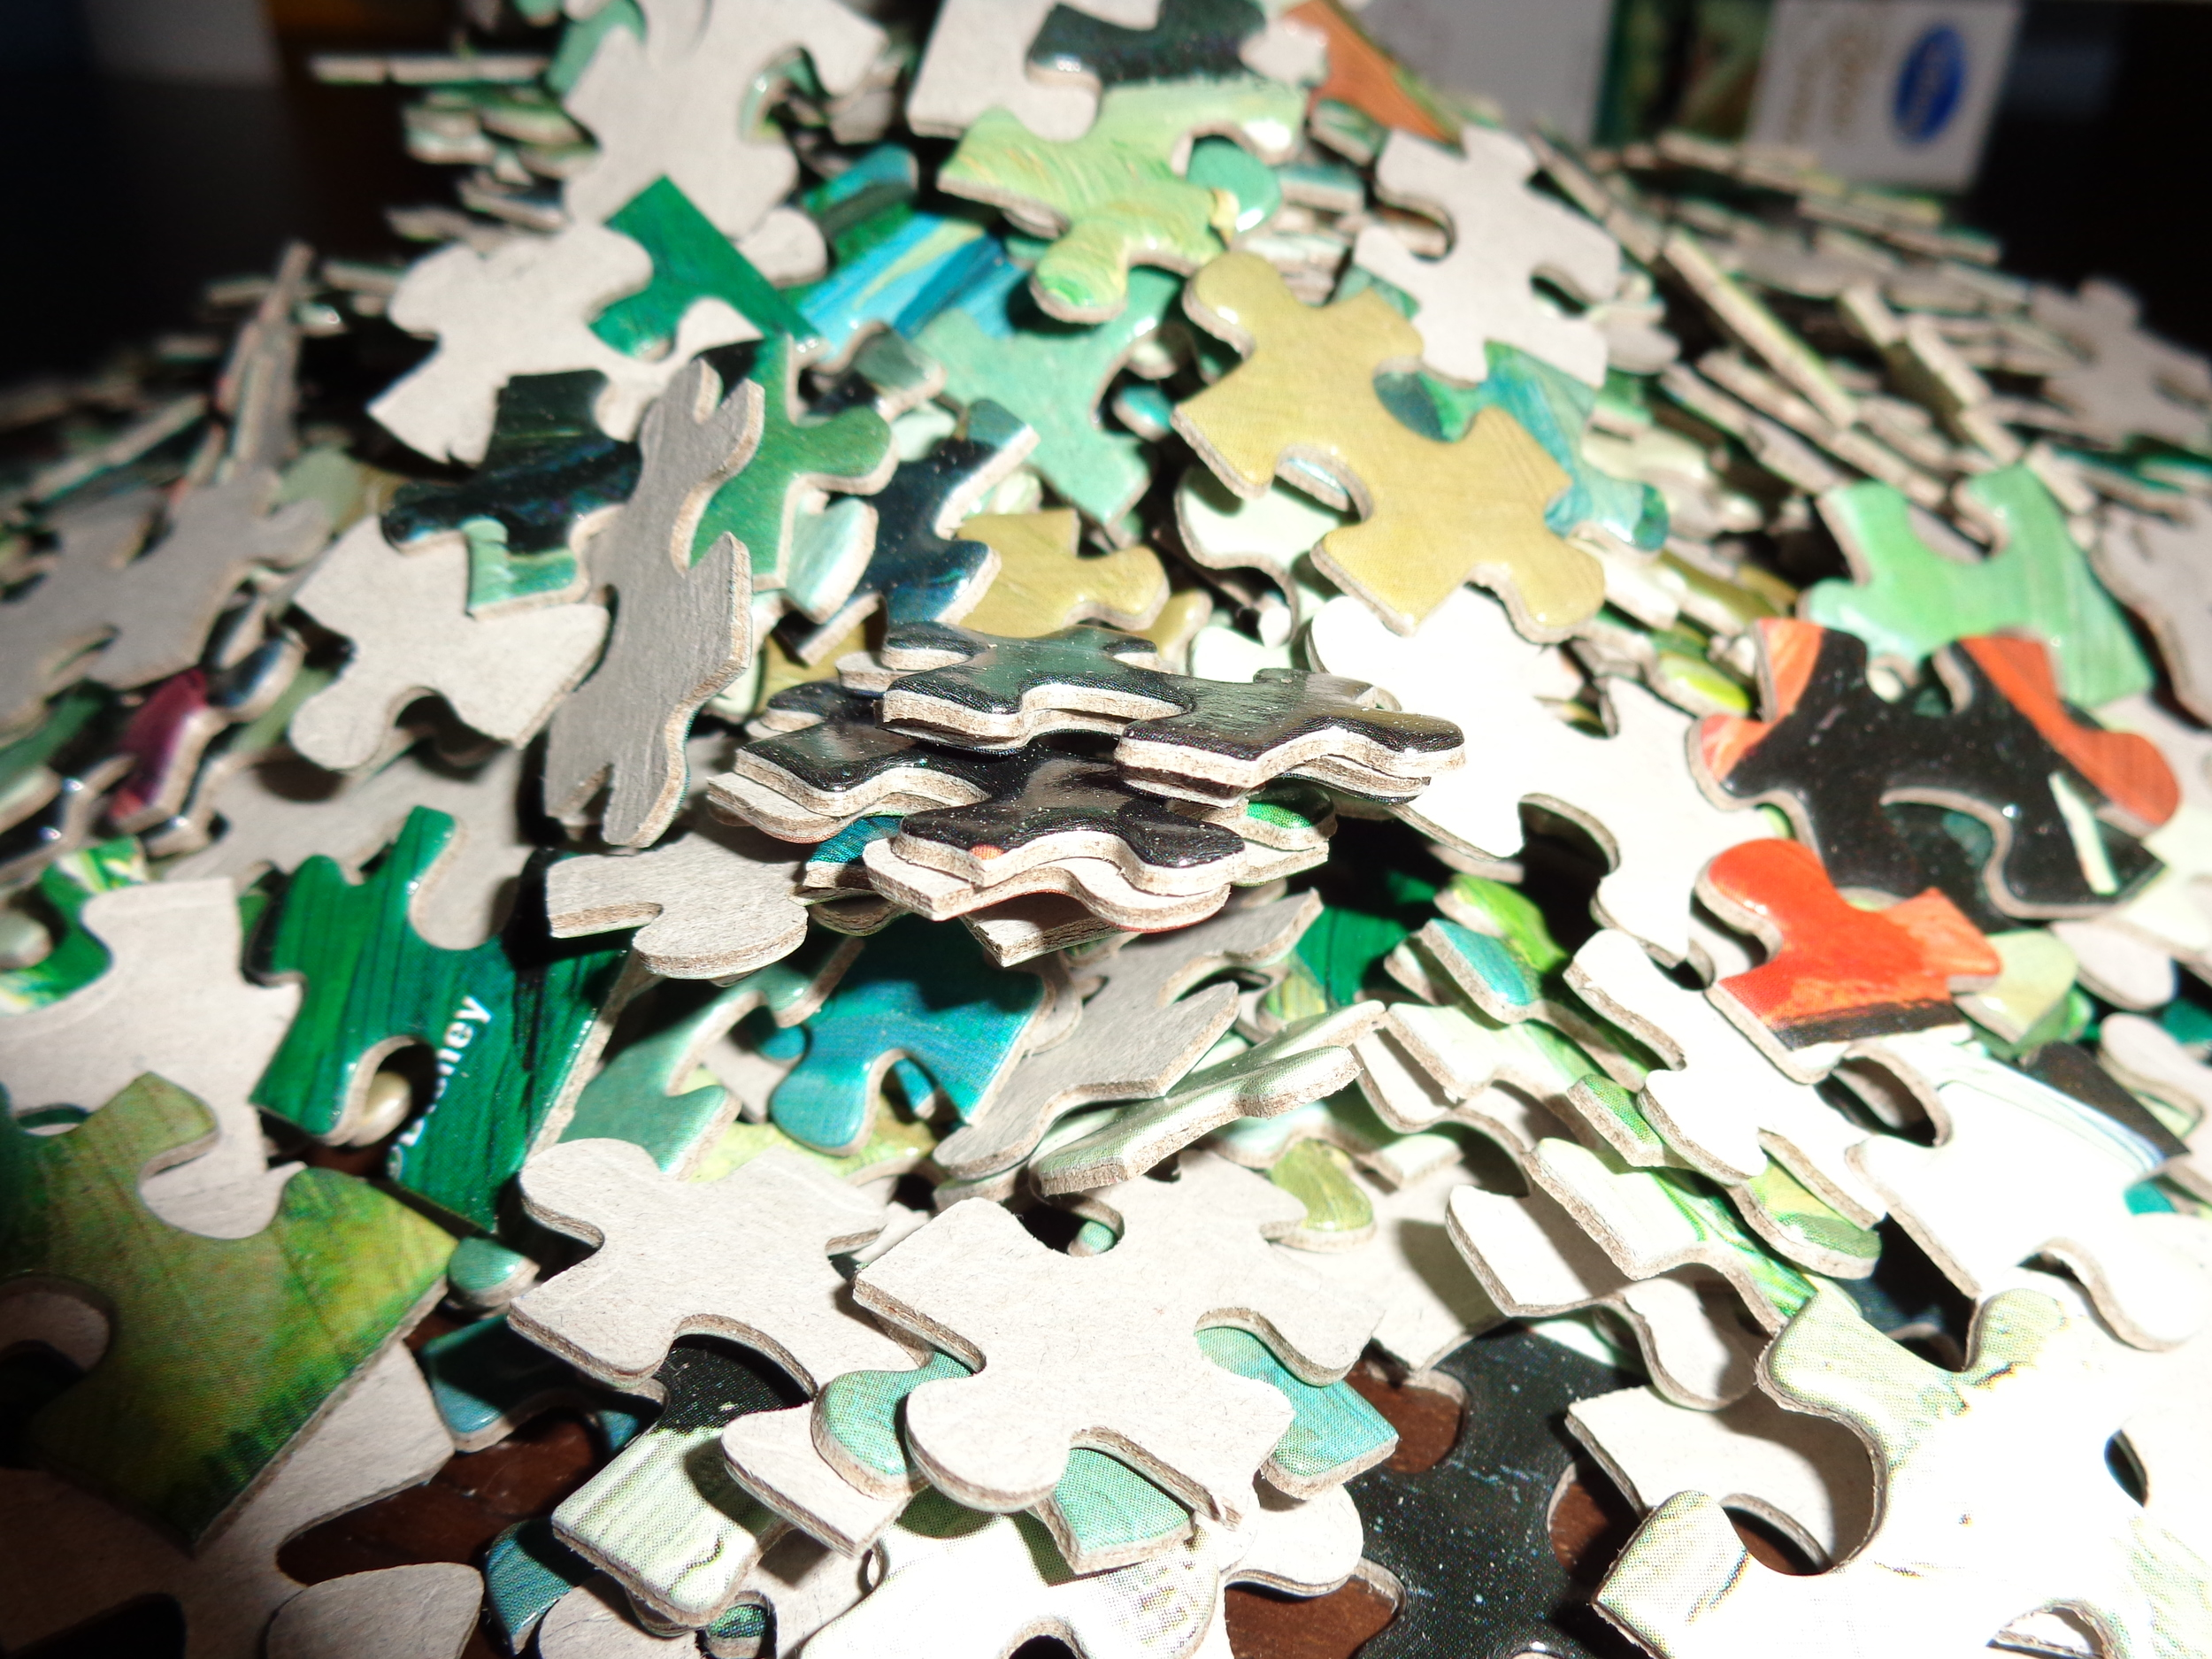 recklesslyoptimisticwith this puzzle